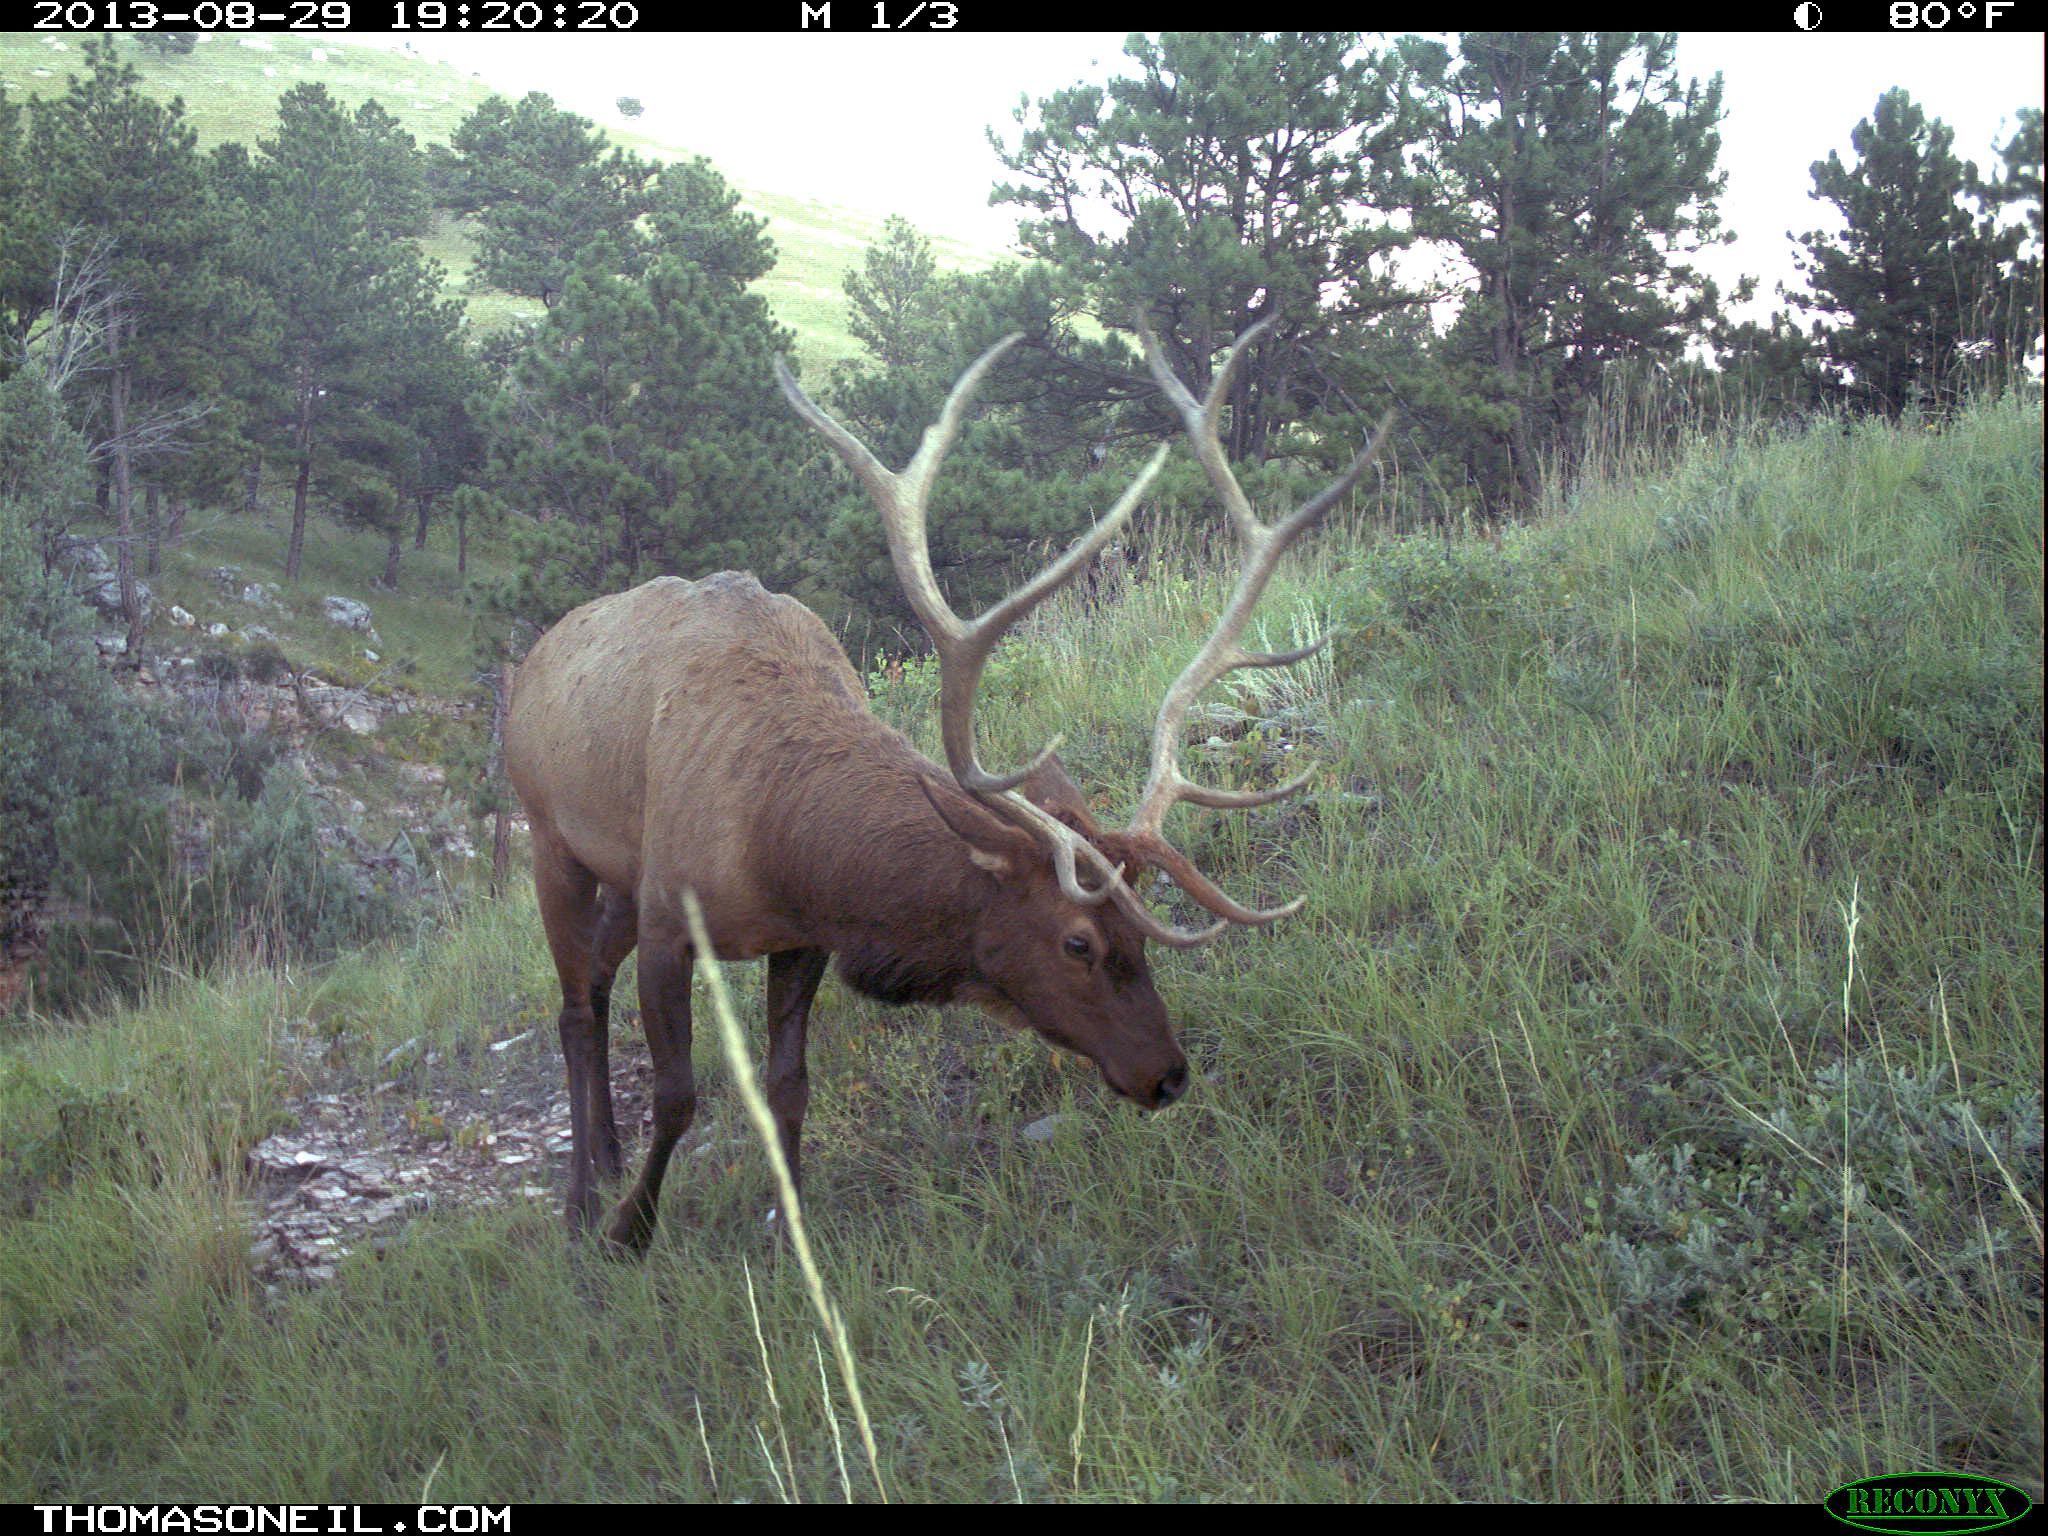 Elk on trail camera, Wind Cave National Park, South Dakota, August 29, 2013.